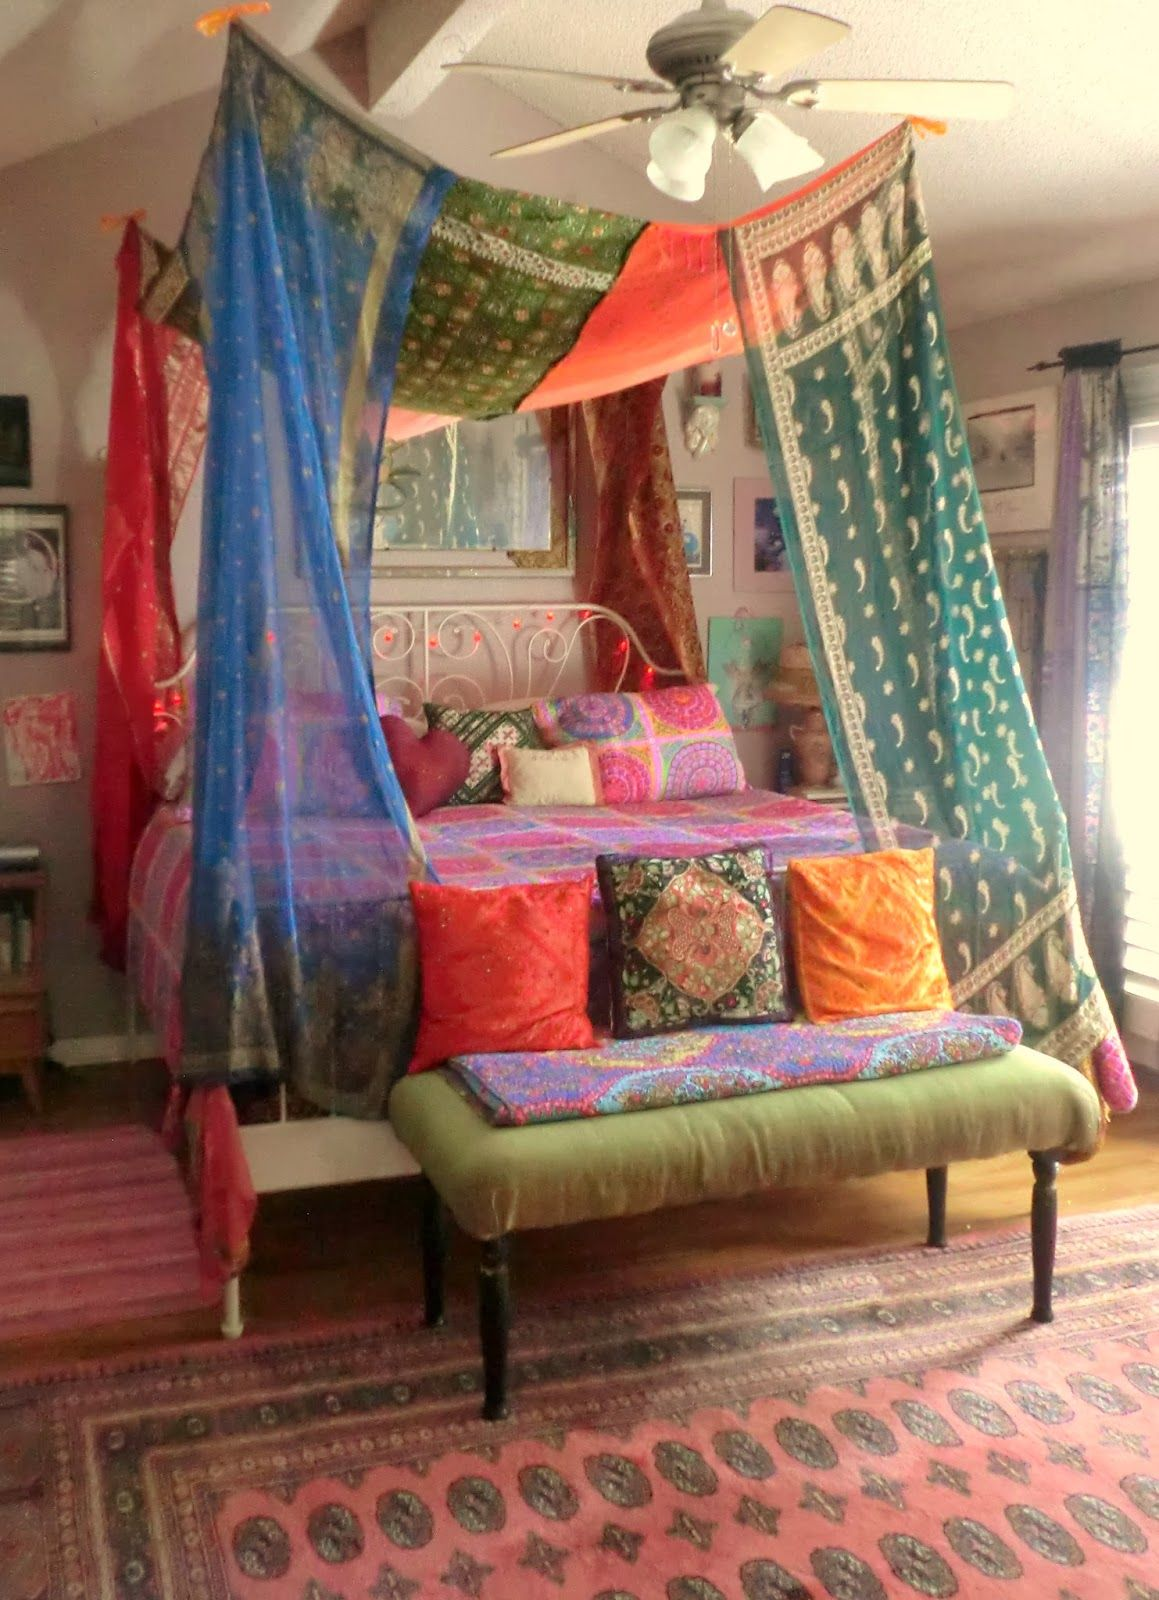 Hippie bohemian bedroom tumblr hippie bohemian bedroom tumblr design inspiration  decorating